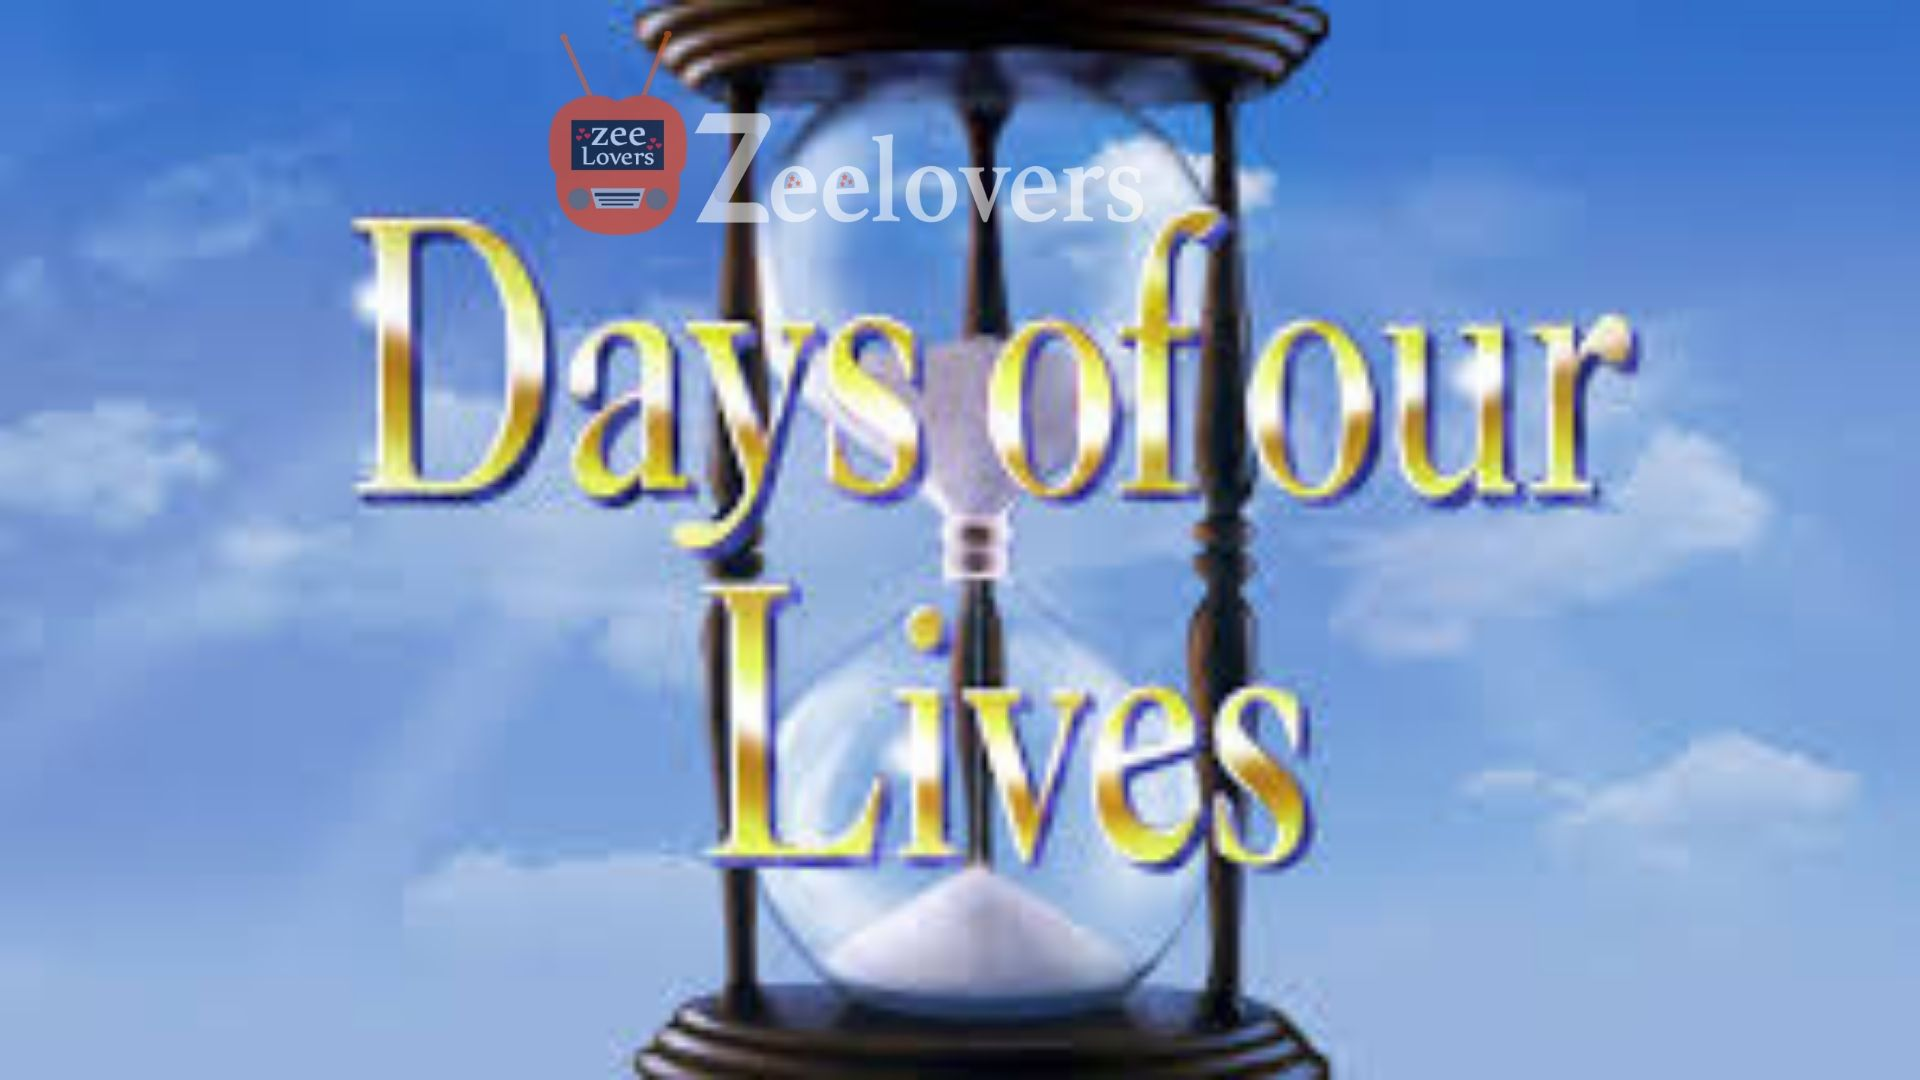 Days of Our Lives Cast, Storyline, Spoilers, Family Tree & Characters